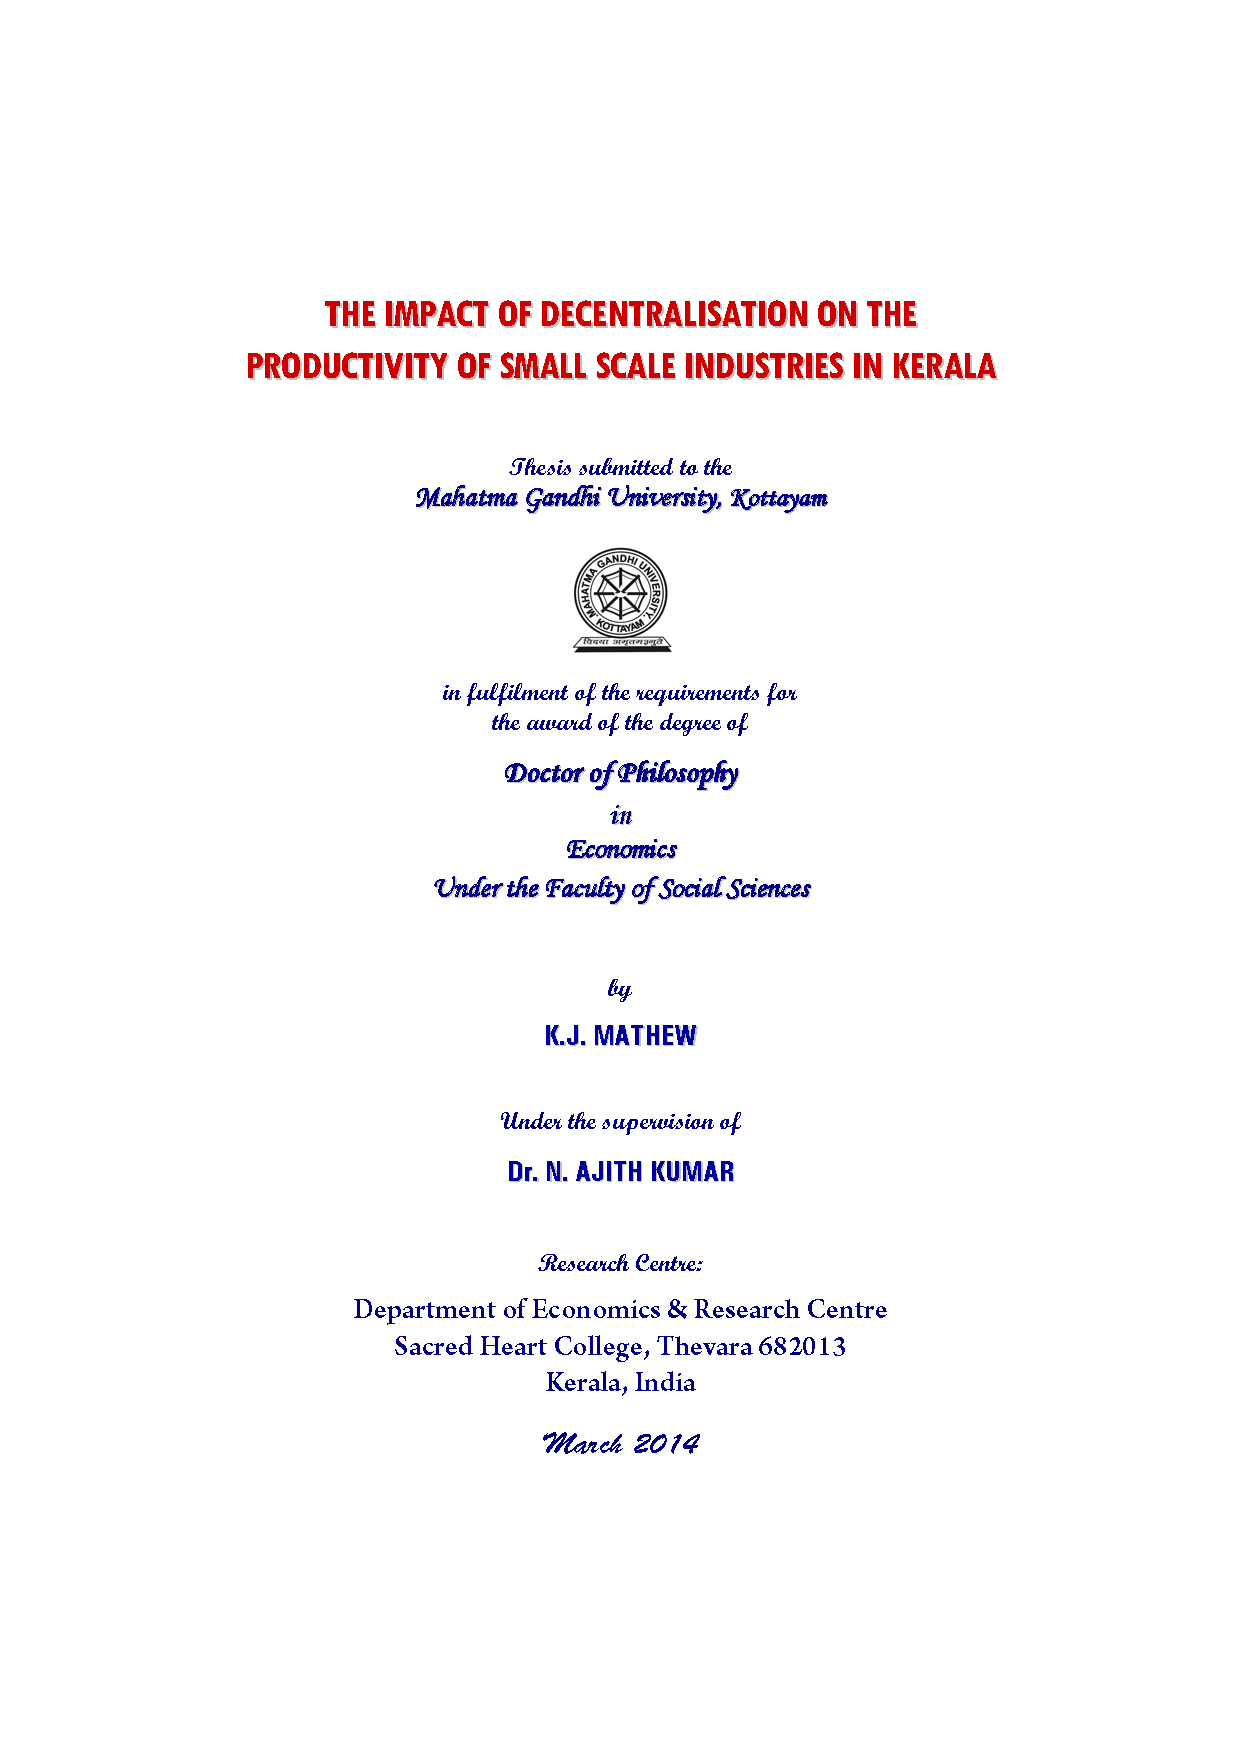 mgu thesis based on small scale industries in kerala